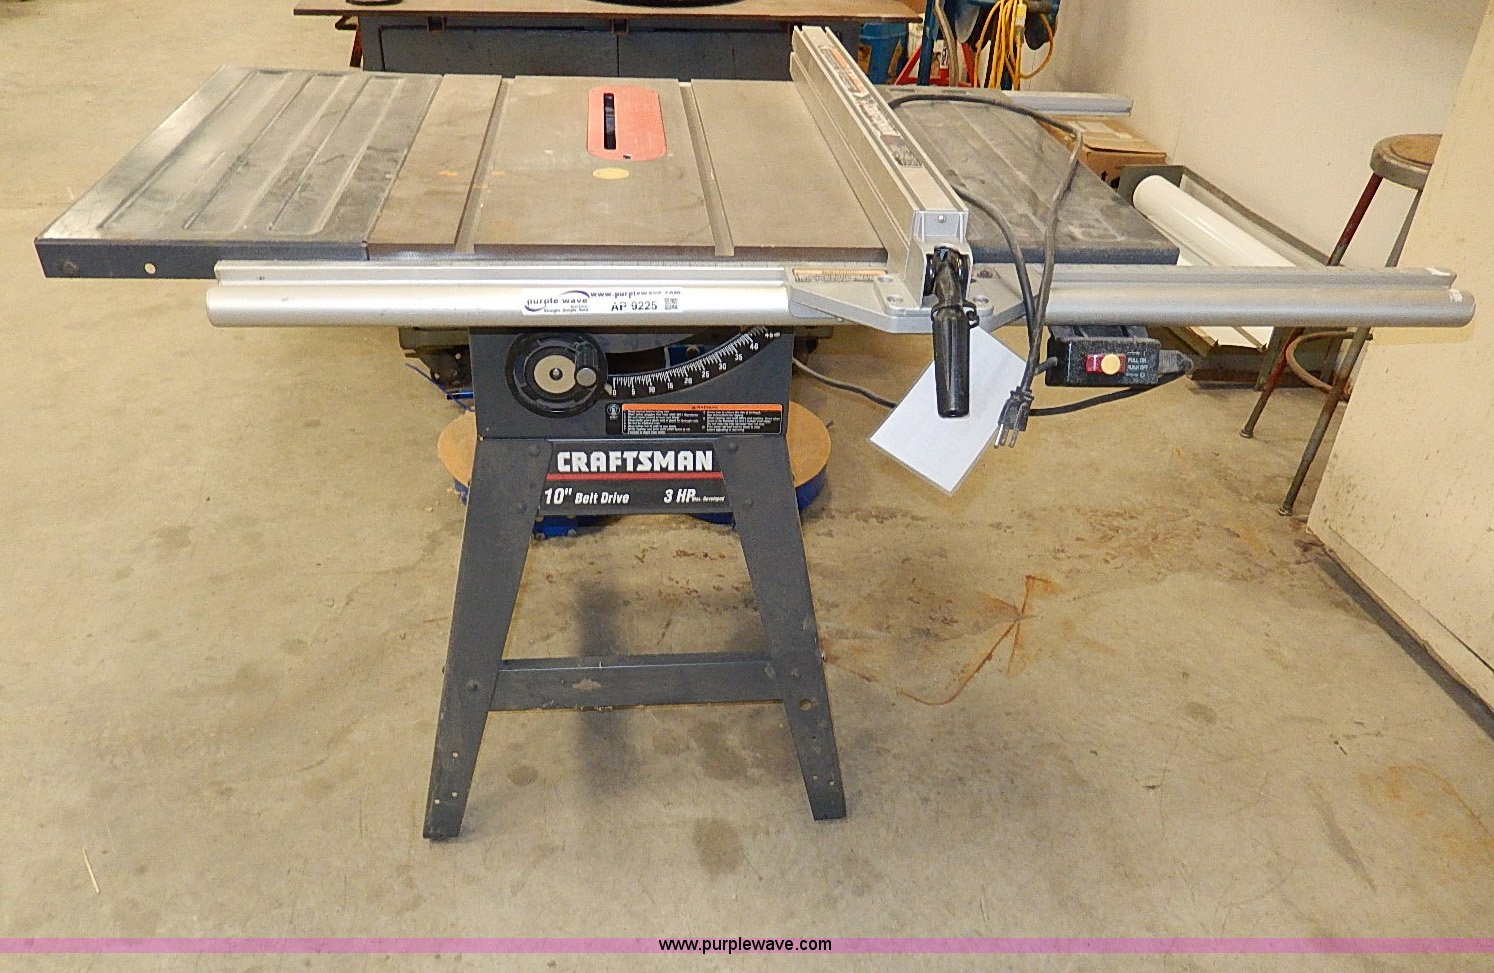 Craftsman 113299315 10 table saw item ap9225 sold ap9225 image for item ap9225 craftsman 113299315 10 table saw keyboard keysfo Gallery